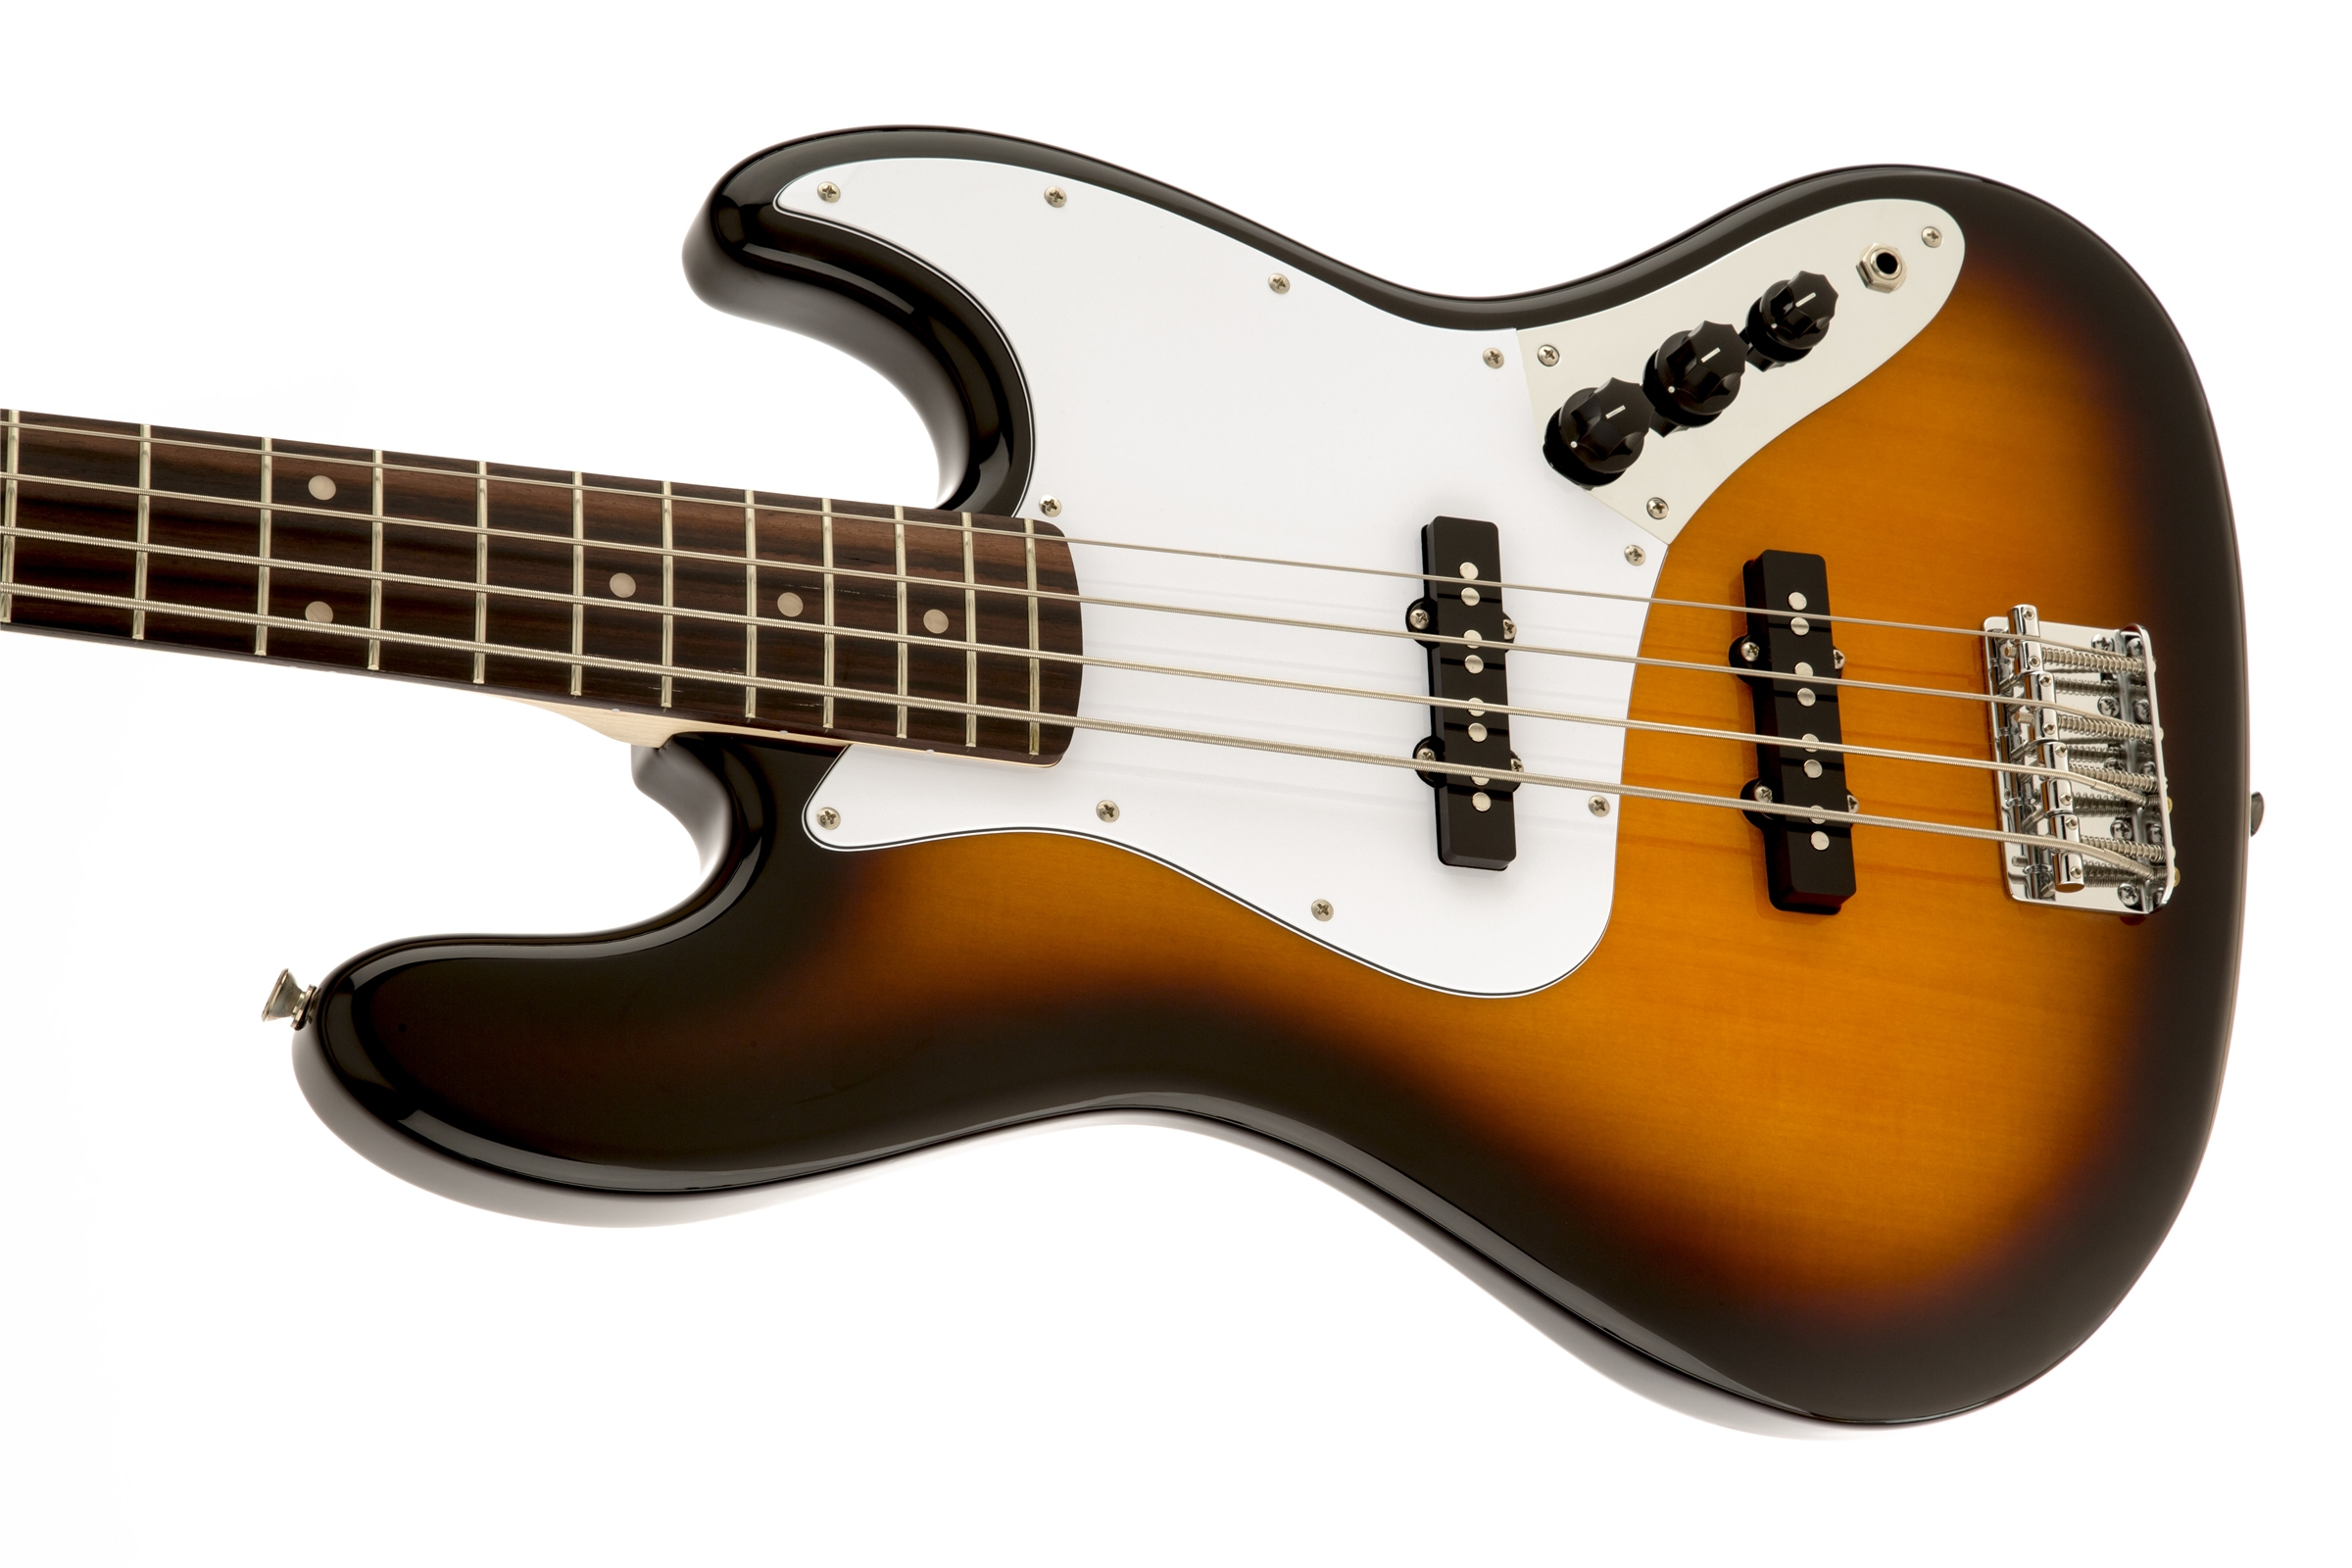 squier affinity jazz bass rosewood fingerboard brown sunburst squier bass guitars. Black Bedroom Furniture Sets. Home Design Ideas